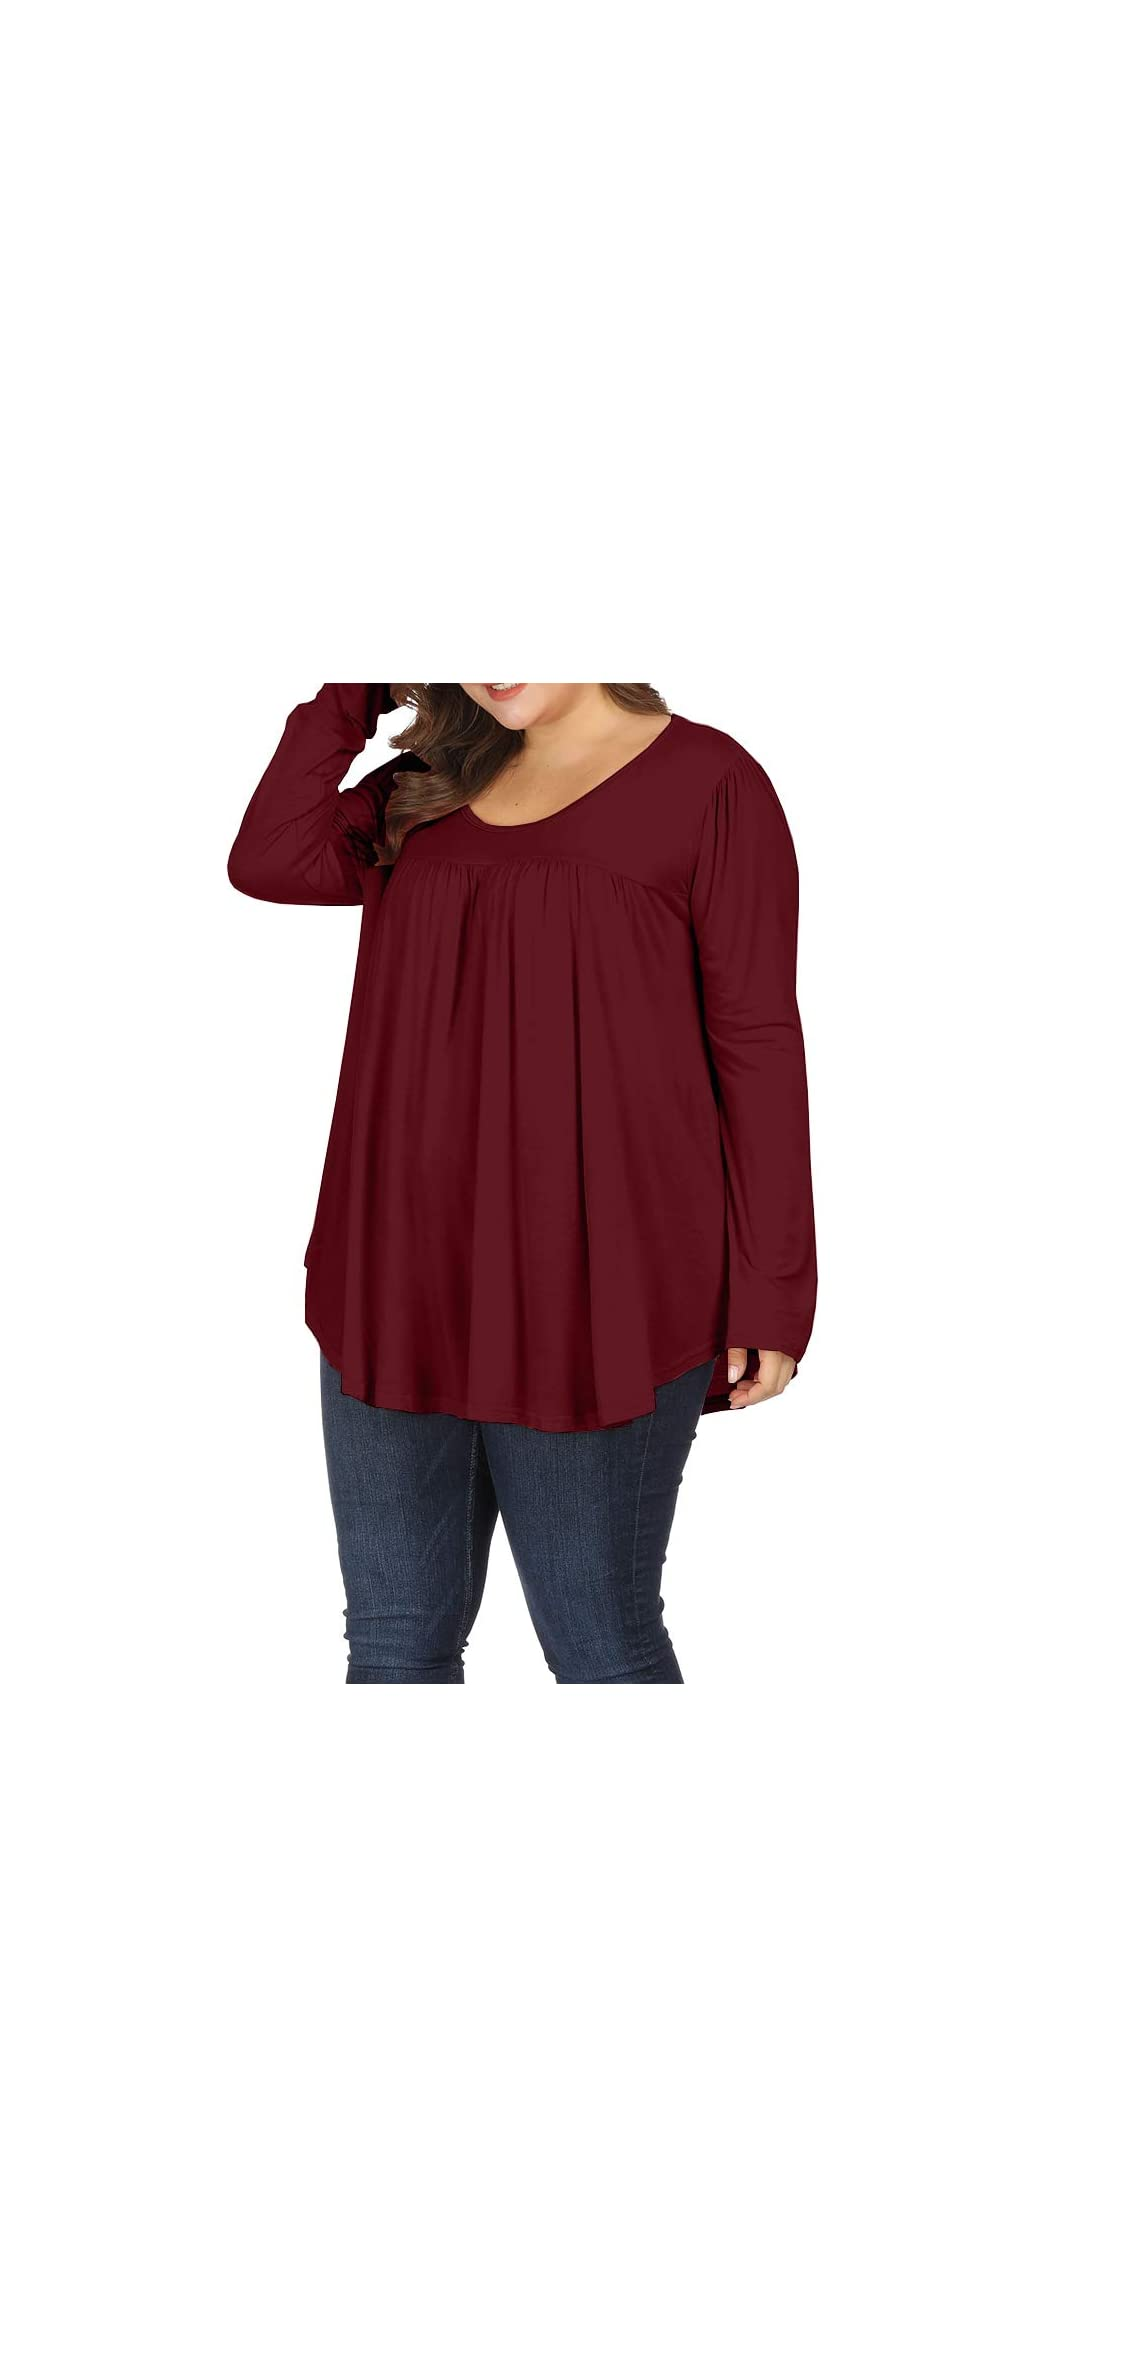 Women Plus Size Casual Pleated Long Sleeve Blouse Top